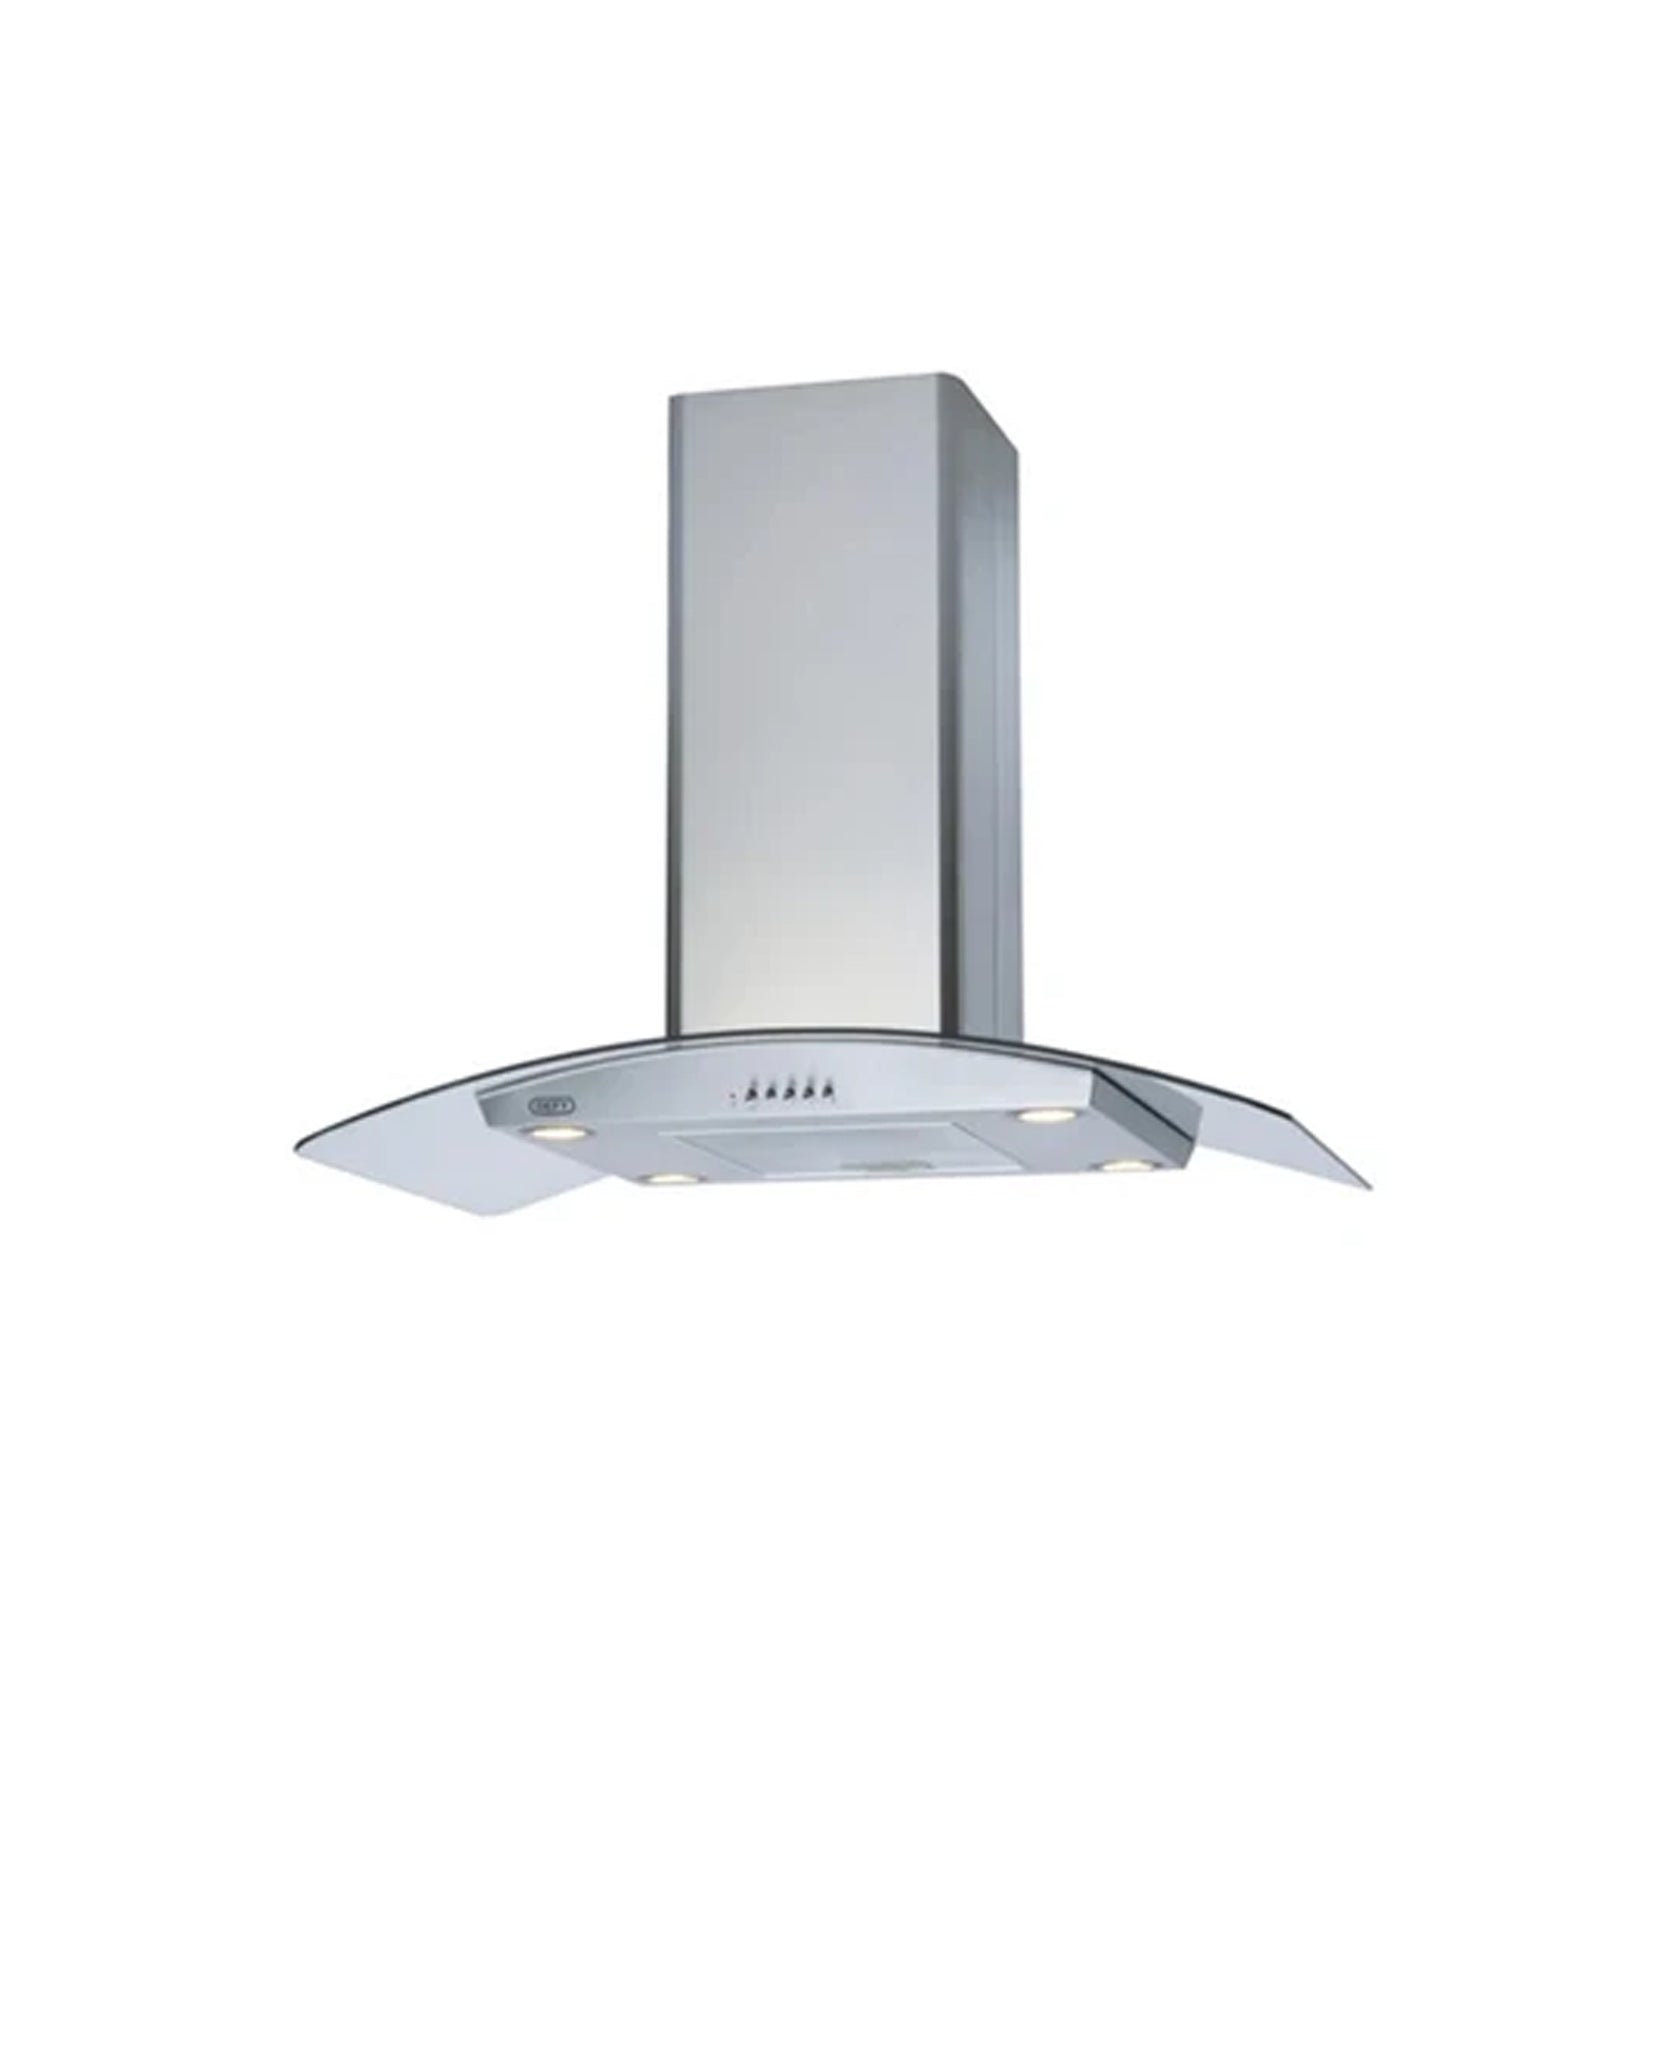 Defy Curved CookerHood Stainless Steel DCH323